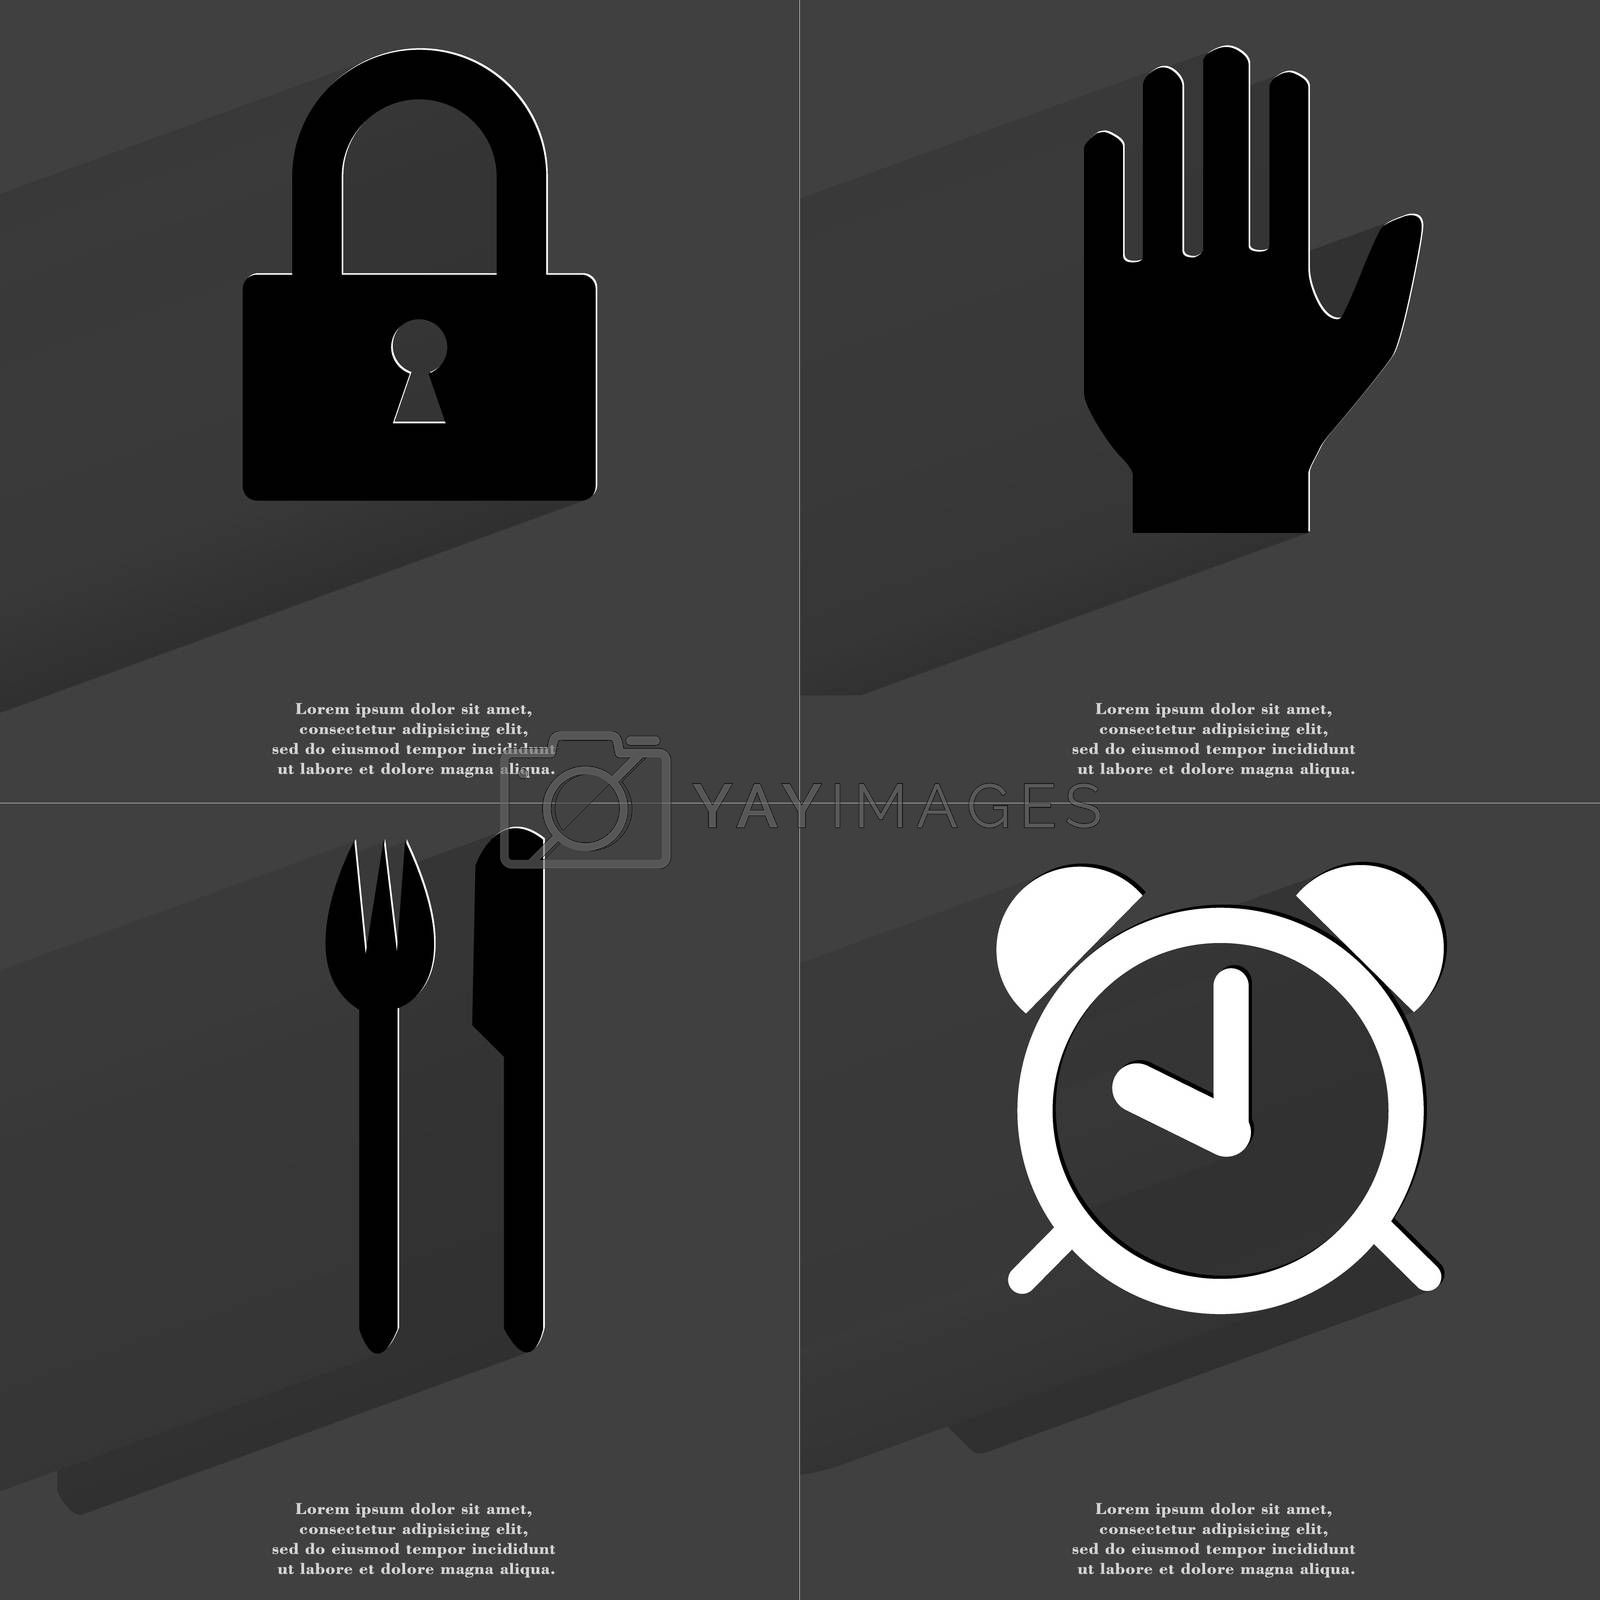 Royalty free image of Lock, Hand, Fork and knife, Alarm clock. Symbols with long shadow. Flat design by serhii_lohvyniuk